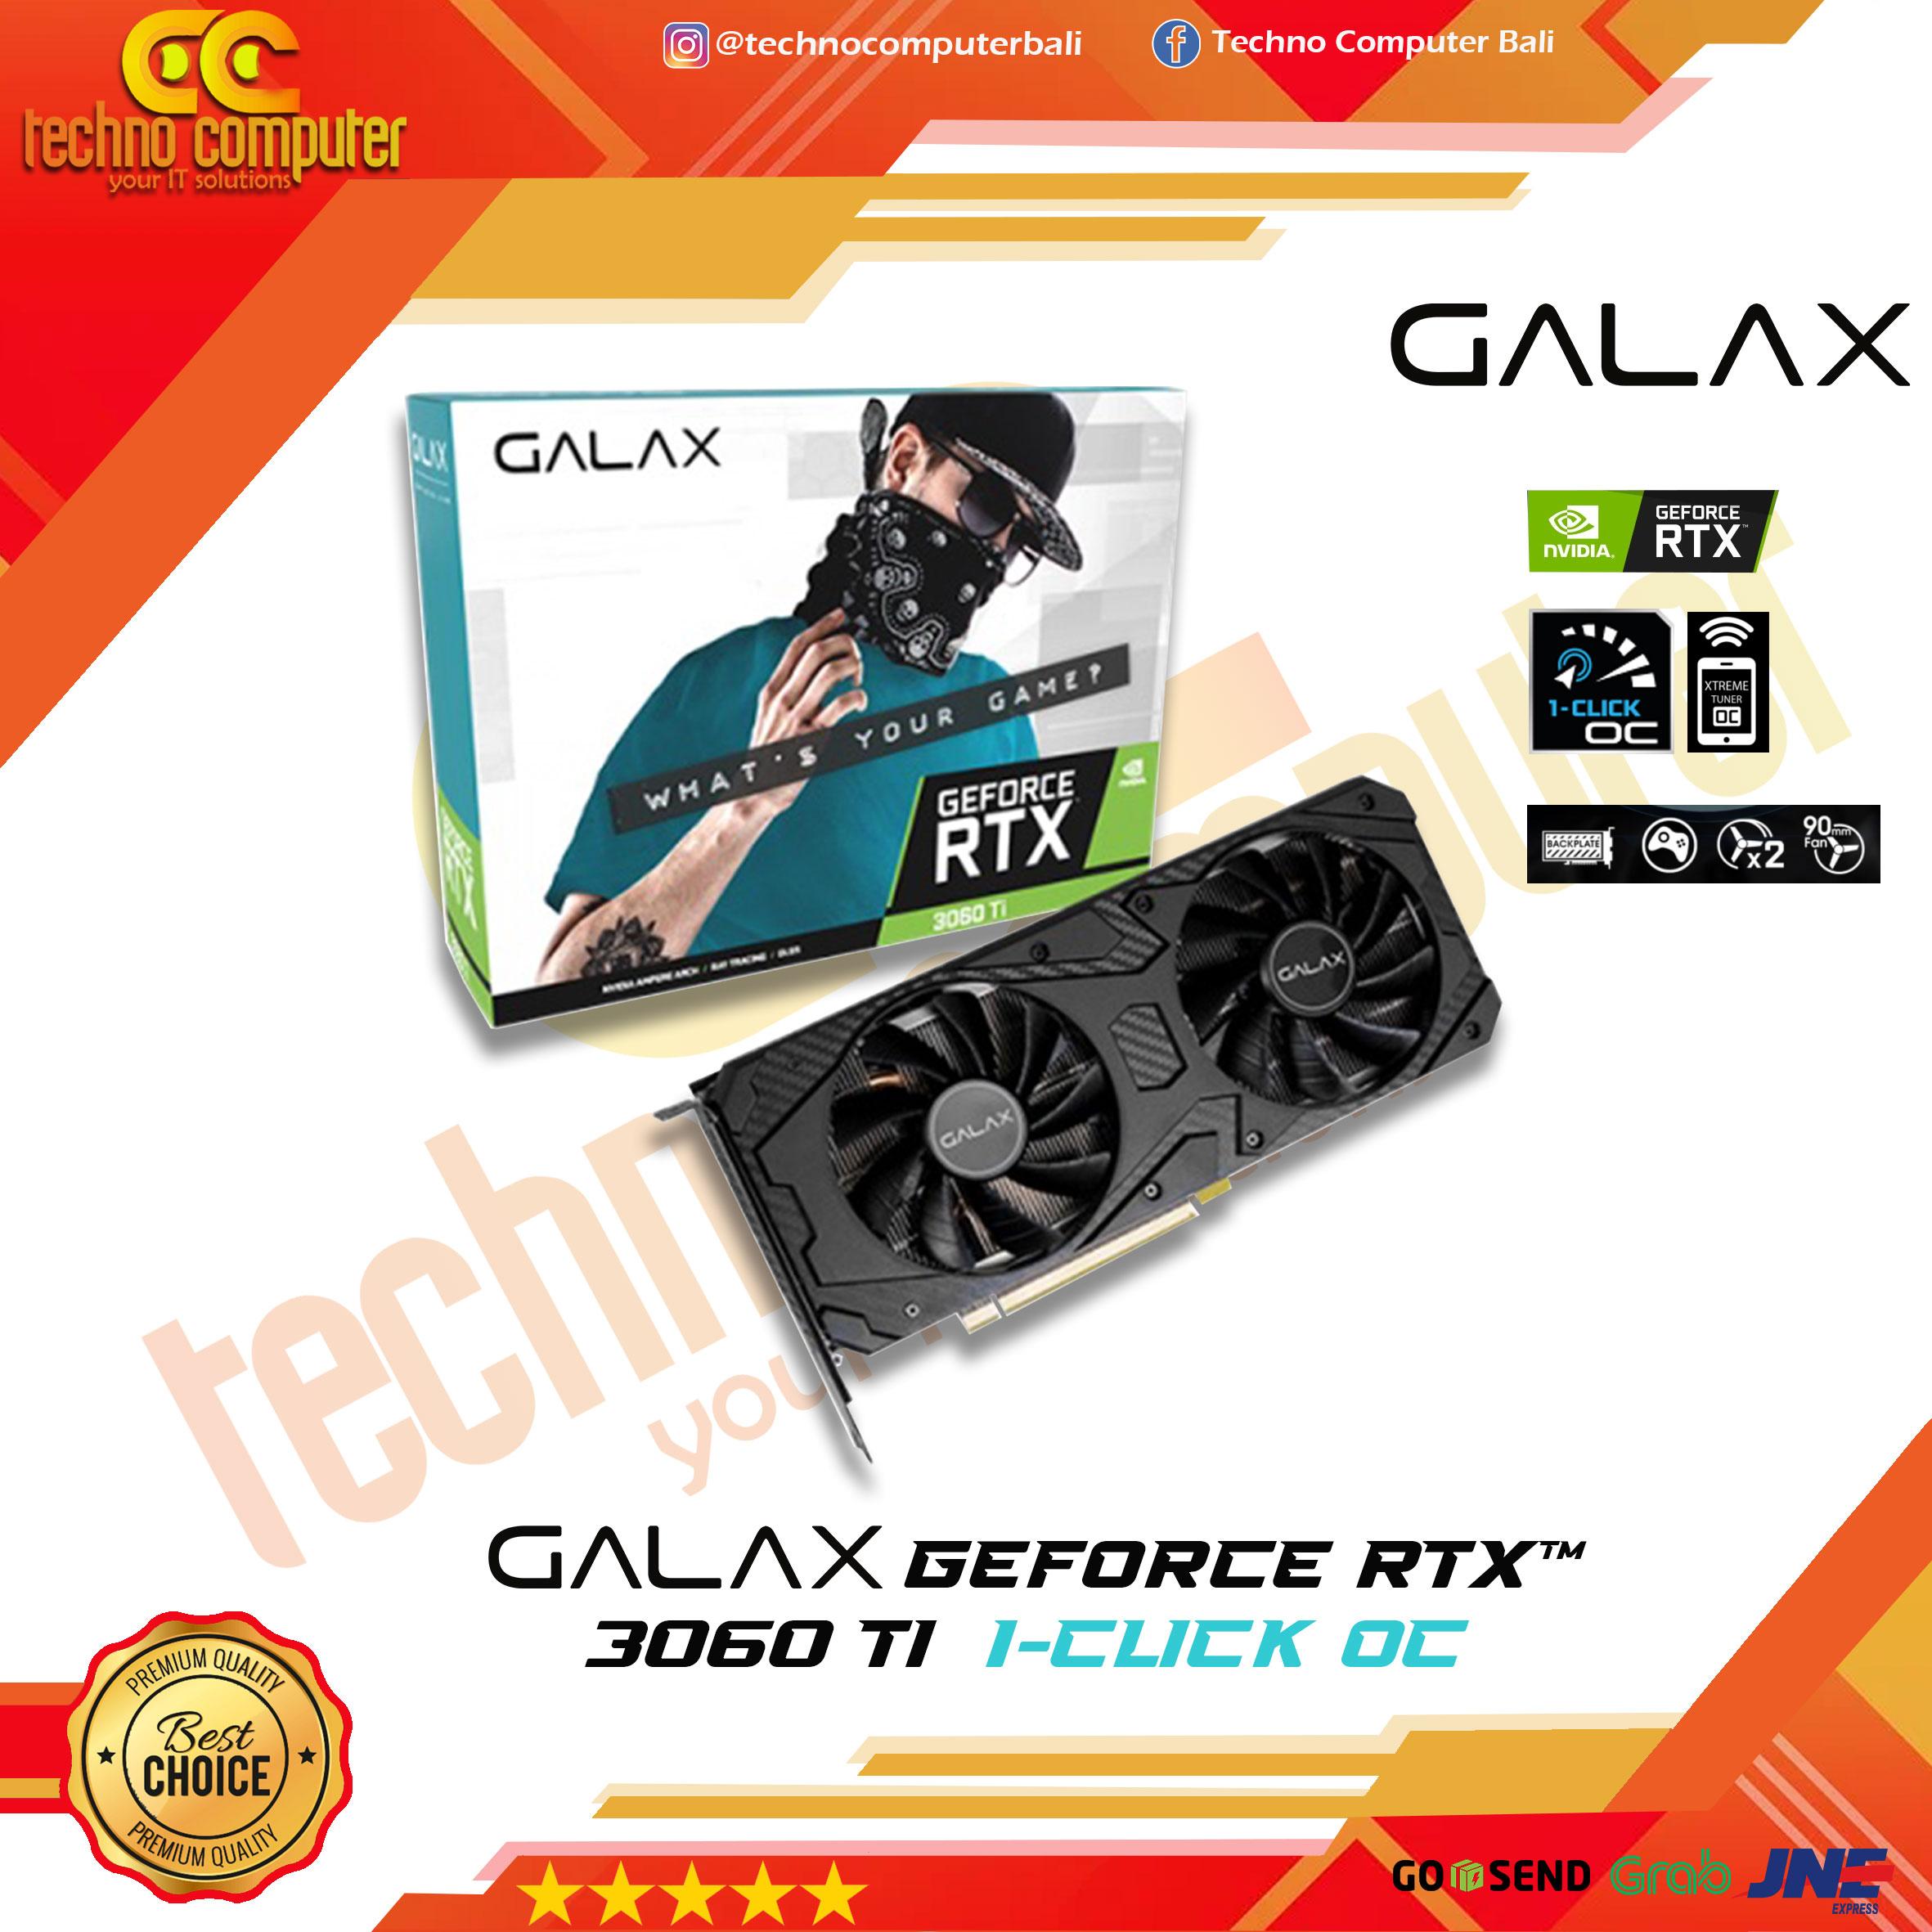 GALAX Geforce RTX 3060Ti 8GB DDR6X (1-Click OC) - DUAL FAN